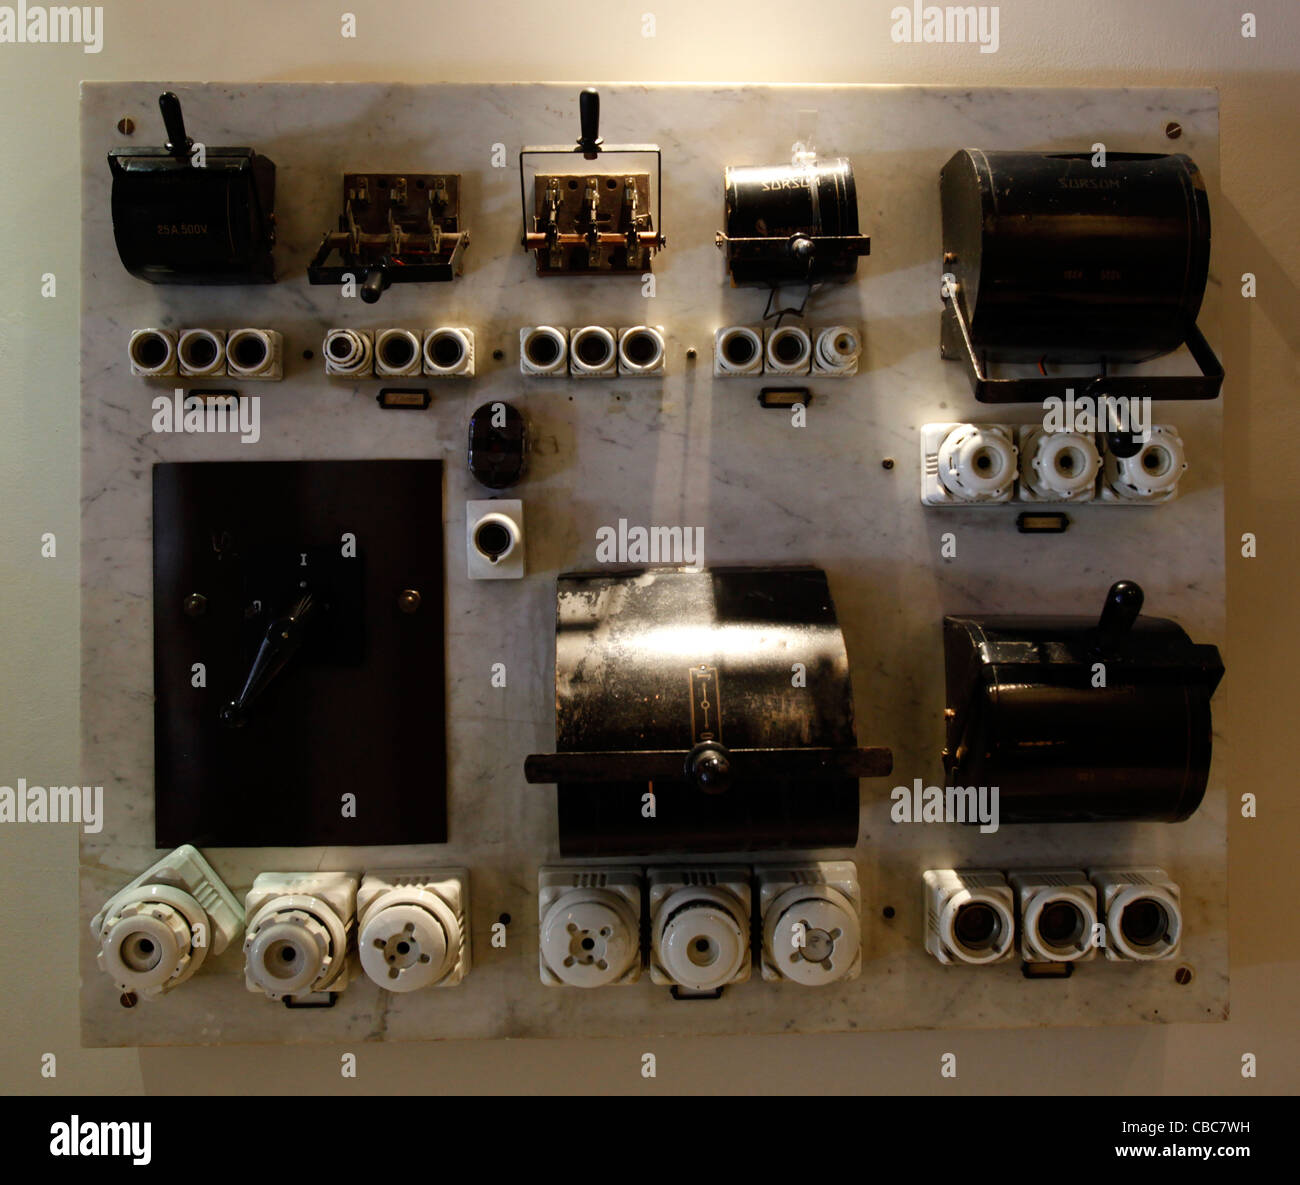 an old electric fuse box switchboard with ceramic fuses stock photo ceramic fuse blocks an old electric fuse box switchboard with ceramic fuses